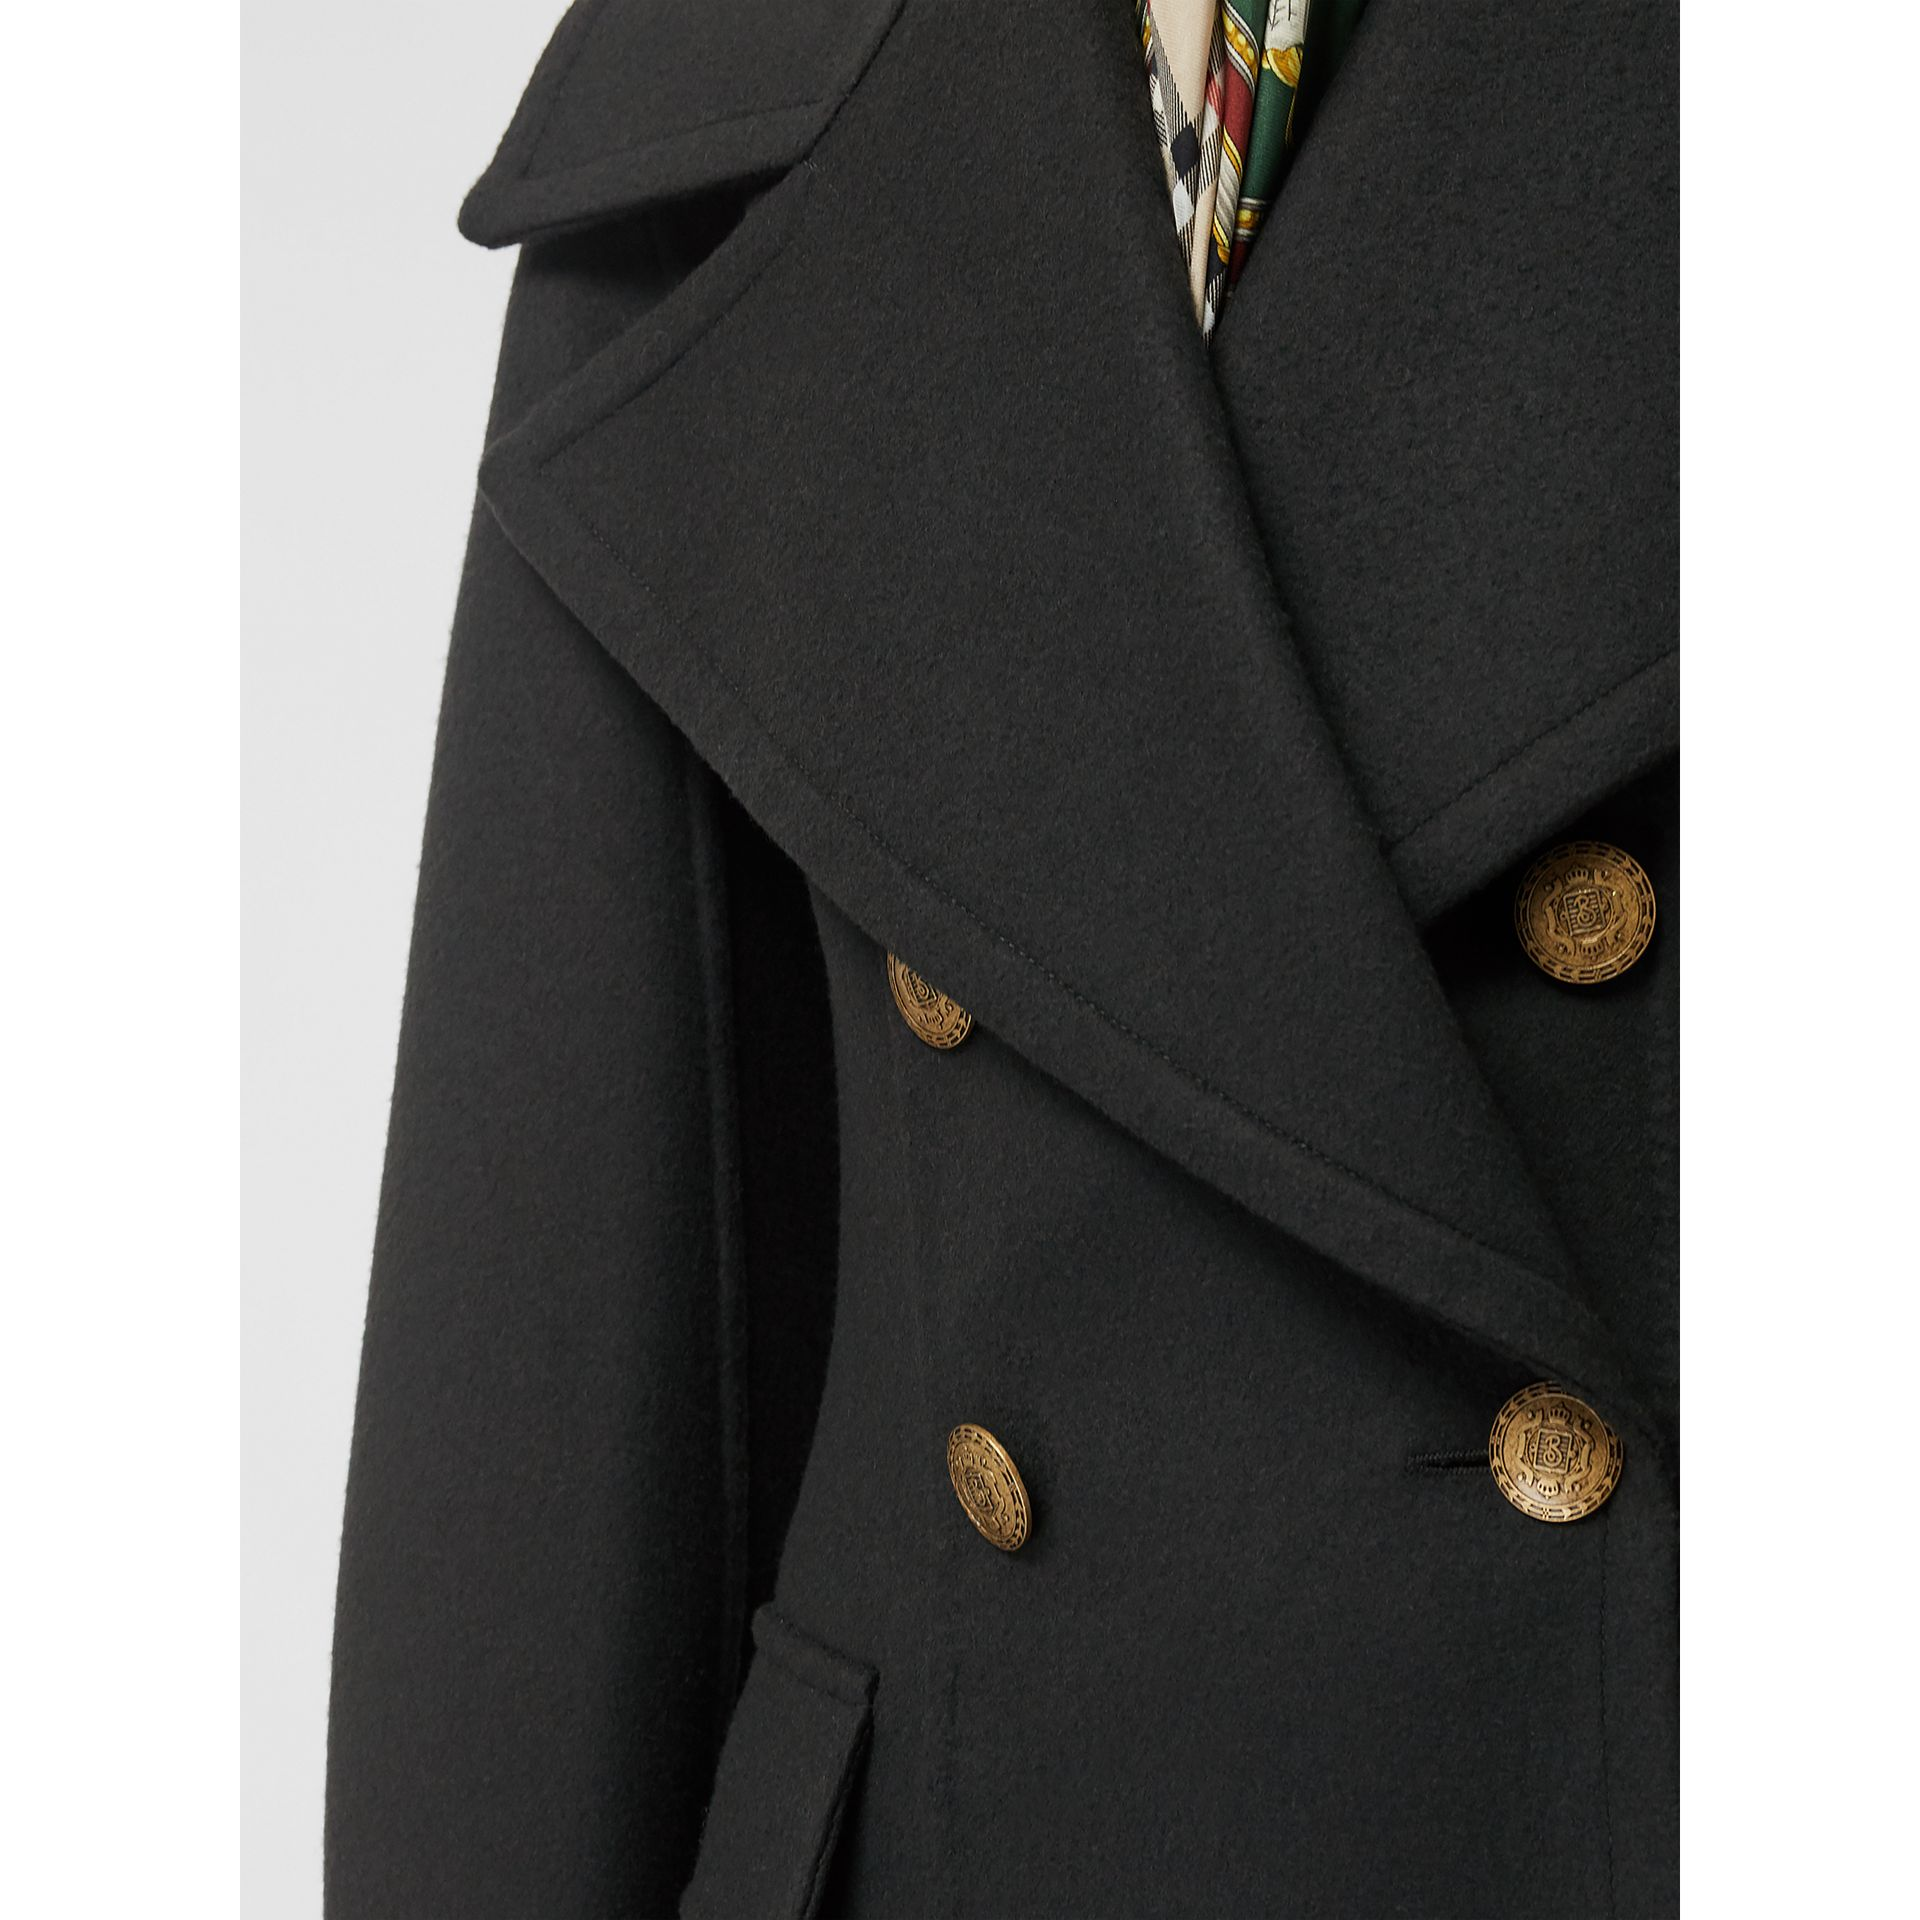 Doeskin Wool Tailored Coat in Dark Forest Green - Women | Burberry United Kingdom - gallery image 4